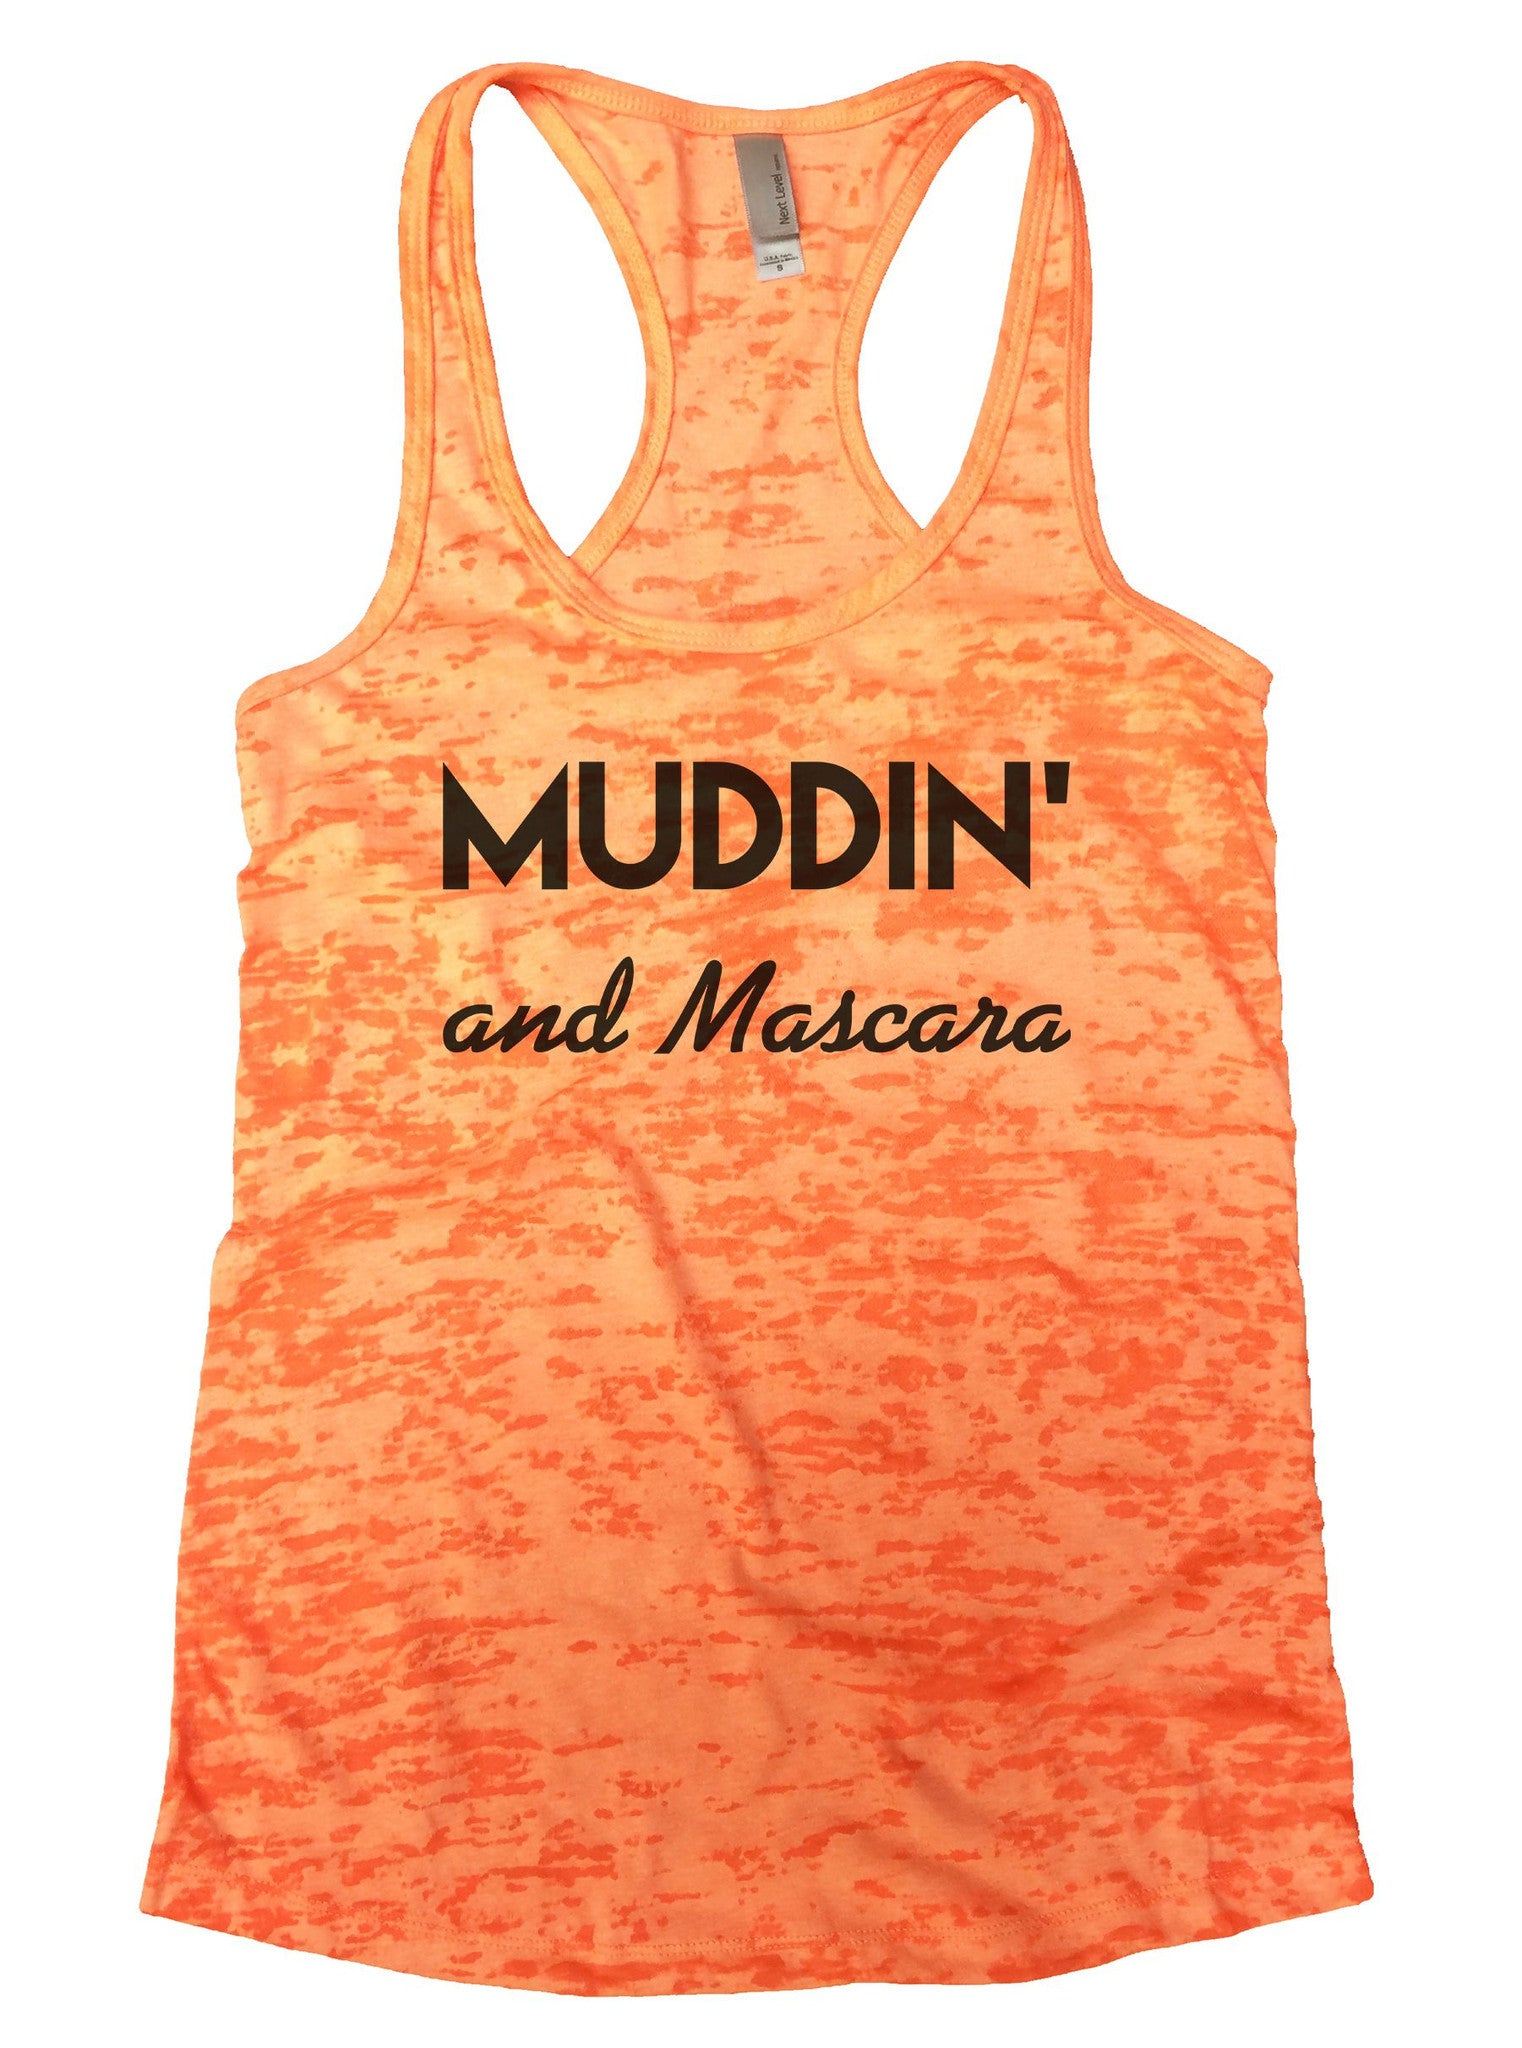 Muddin And Mascara Burnout Tank Top By BurnoutTankTops.com - 803 - Funny Shirts Tank Tops Burnouts and Triblends  - 3